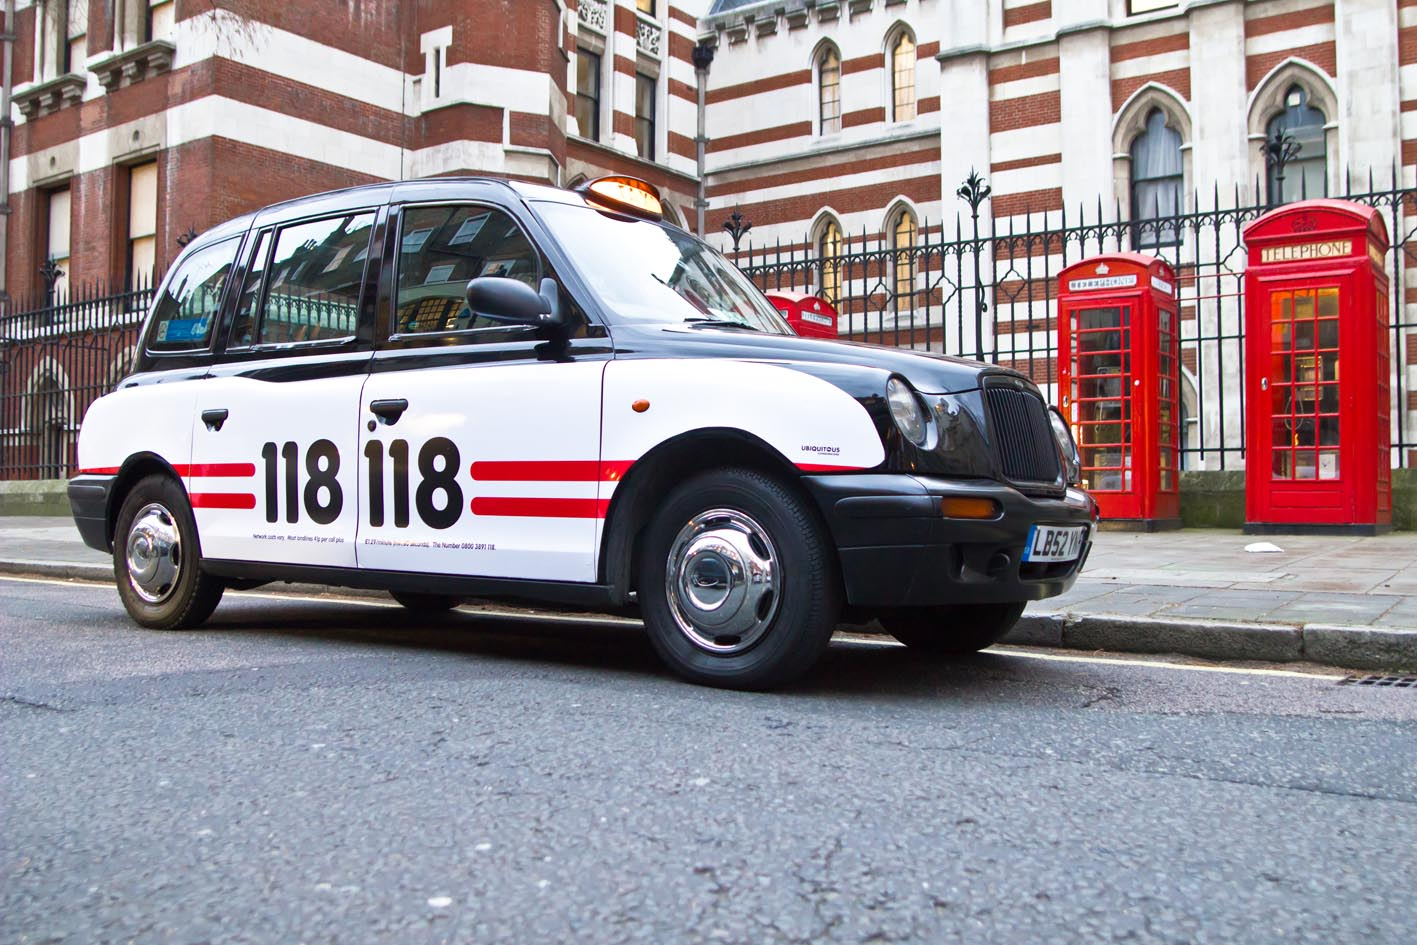 2011 Ubiquitous taxi advertising campaign for 118 118 - 118 118